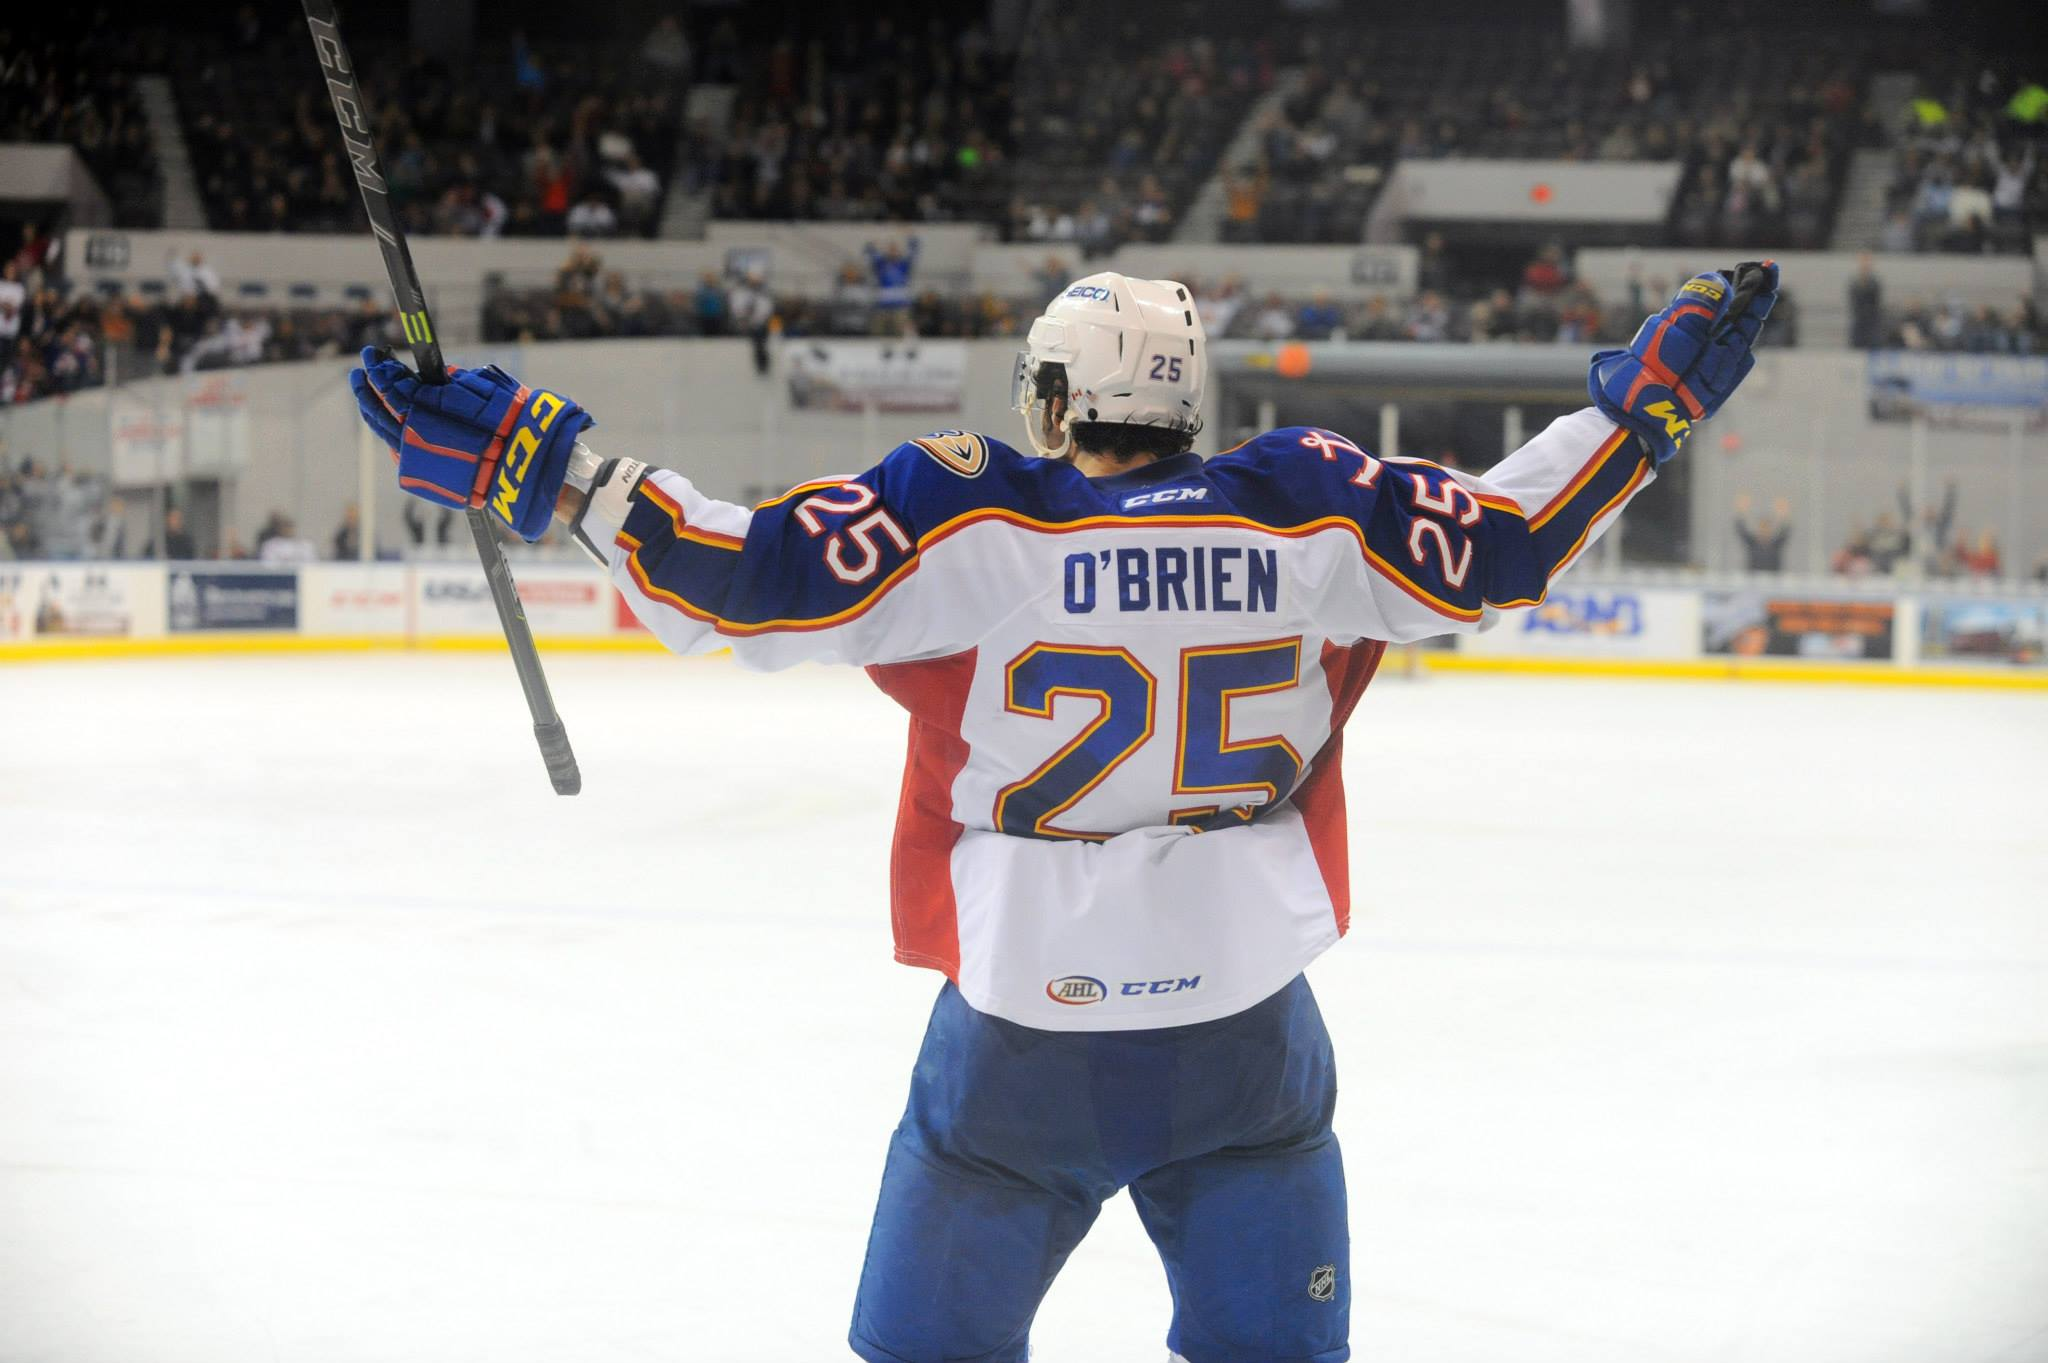 Andrew O'Brien celebrates his first goal as an Admiral Jan 23, 2015